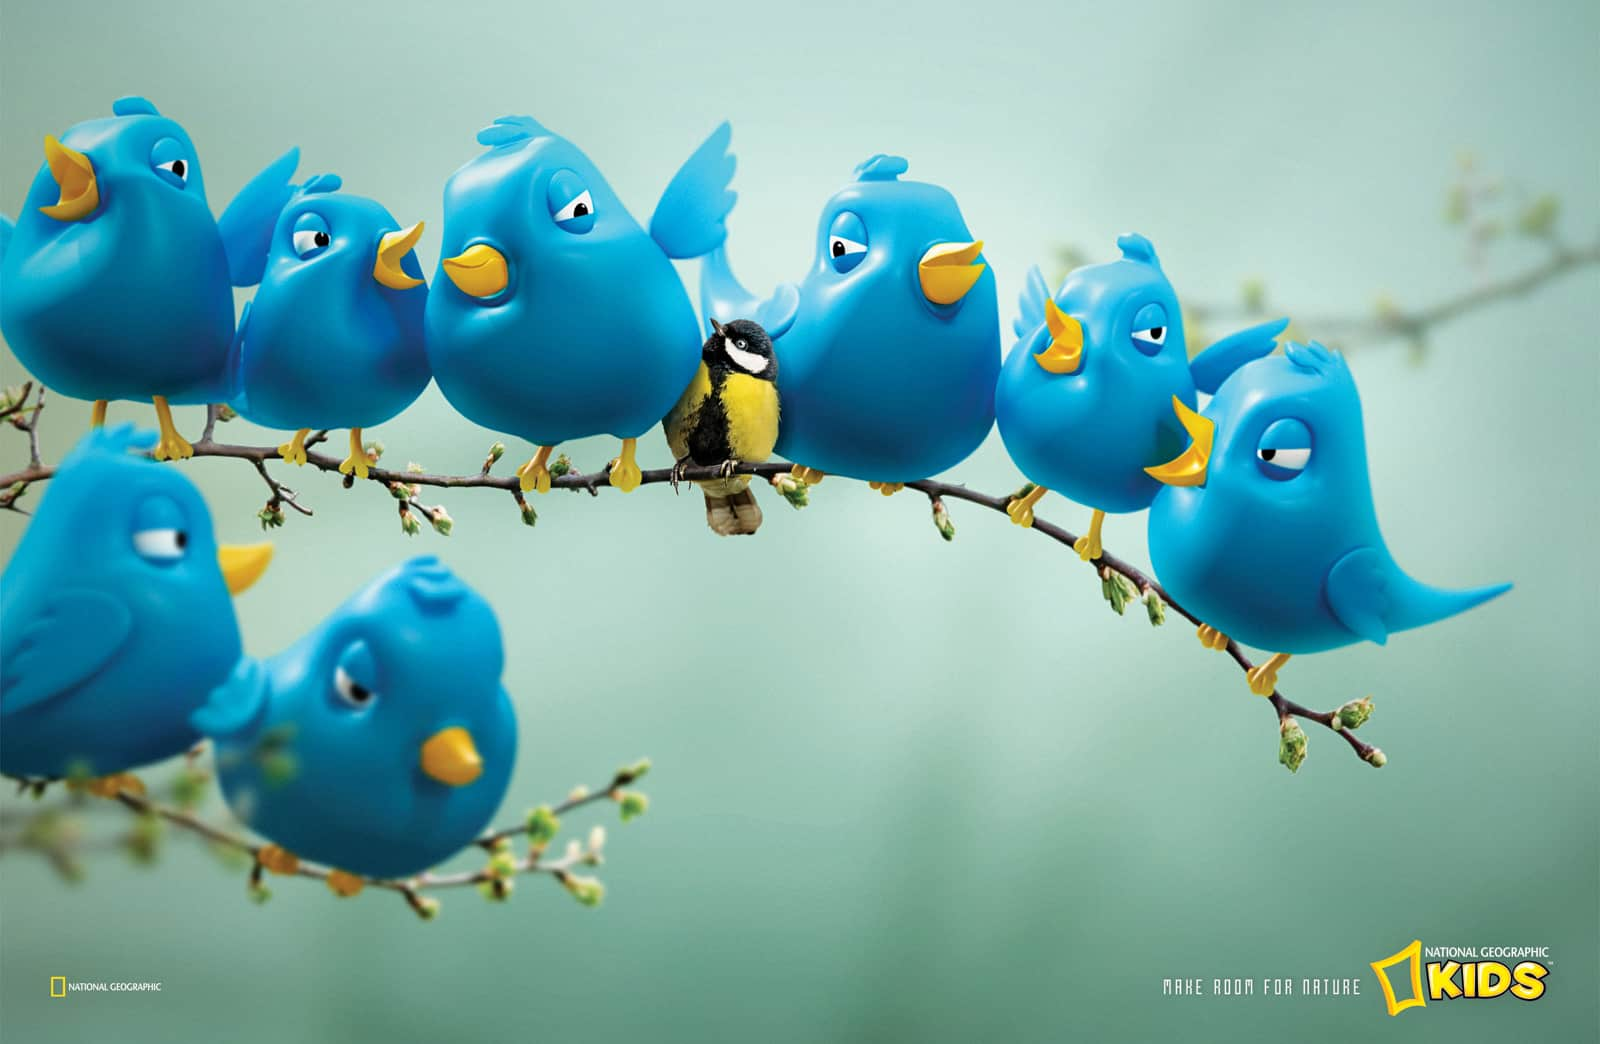 Pub National Geographic : Twitter